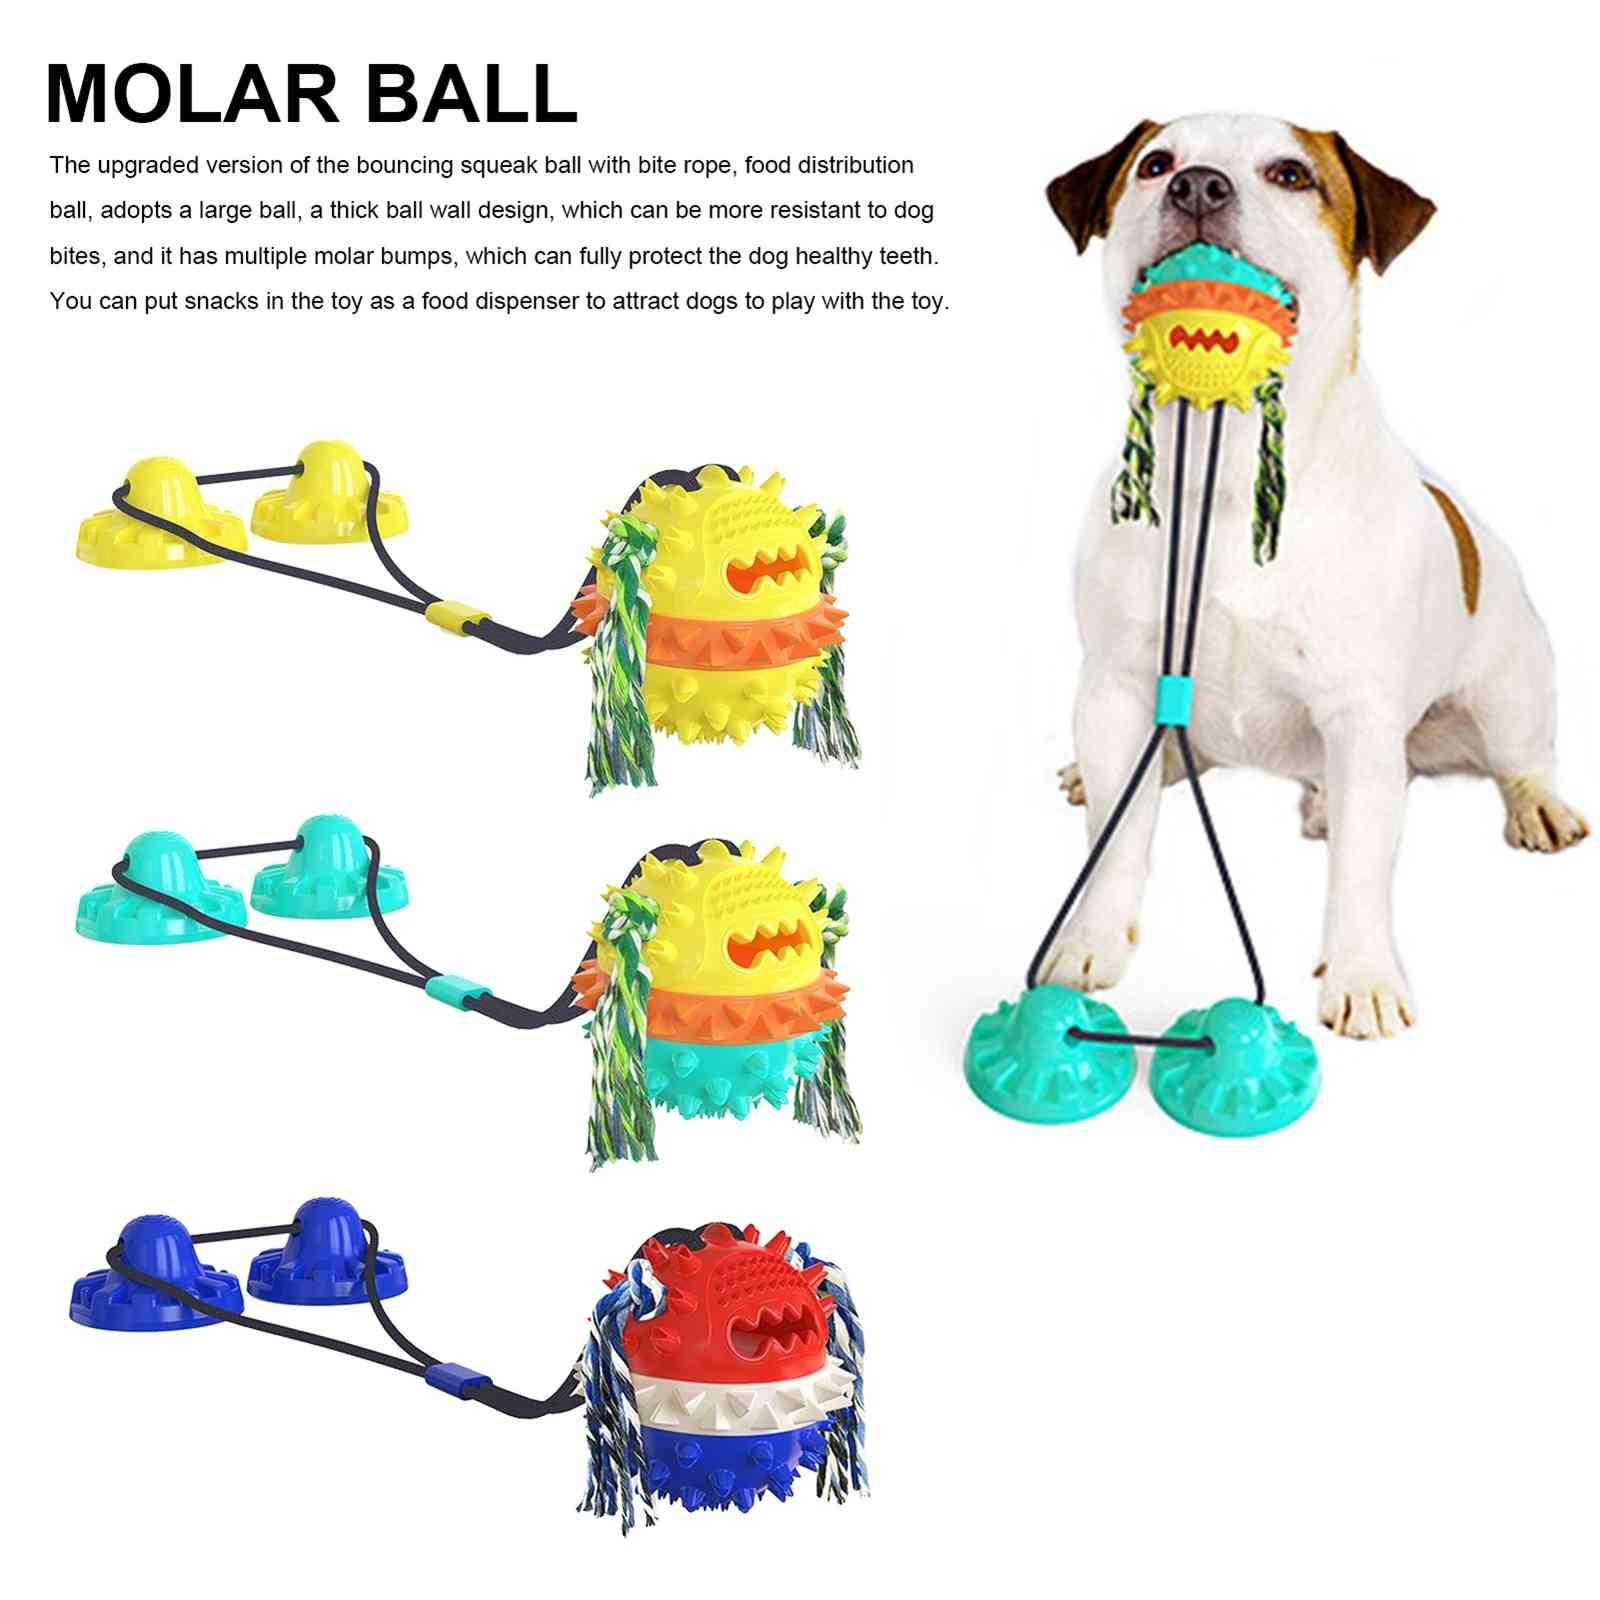 Pet molar bowl ball Bite Interactive Dog Toy With Durable Rope And Suction Cup For Pulling/Chewing/Teeth Cleaning Self Playing Tog For Dogs